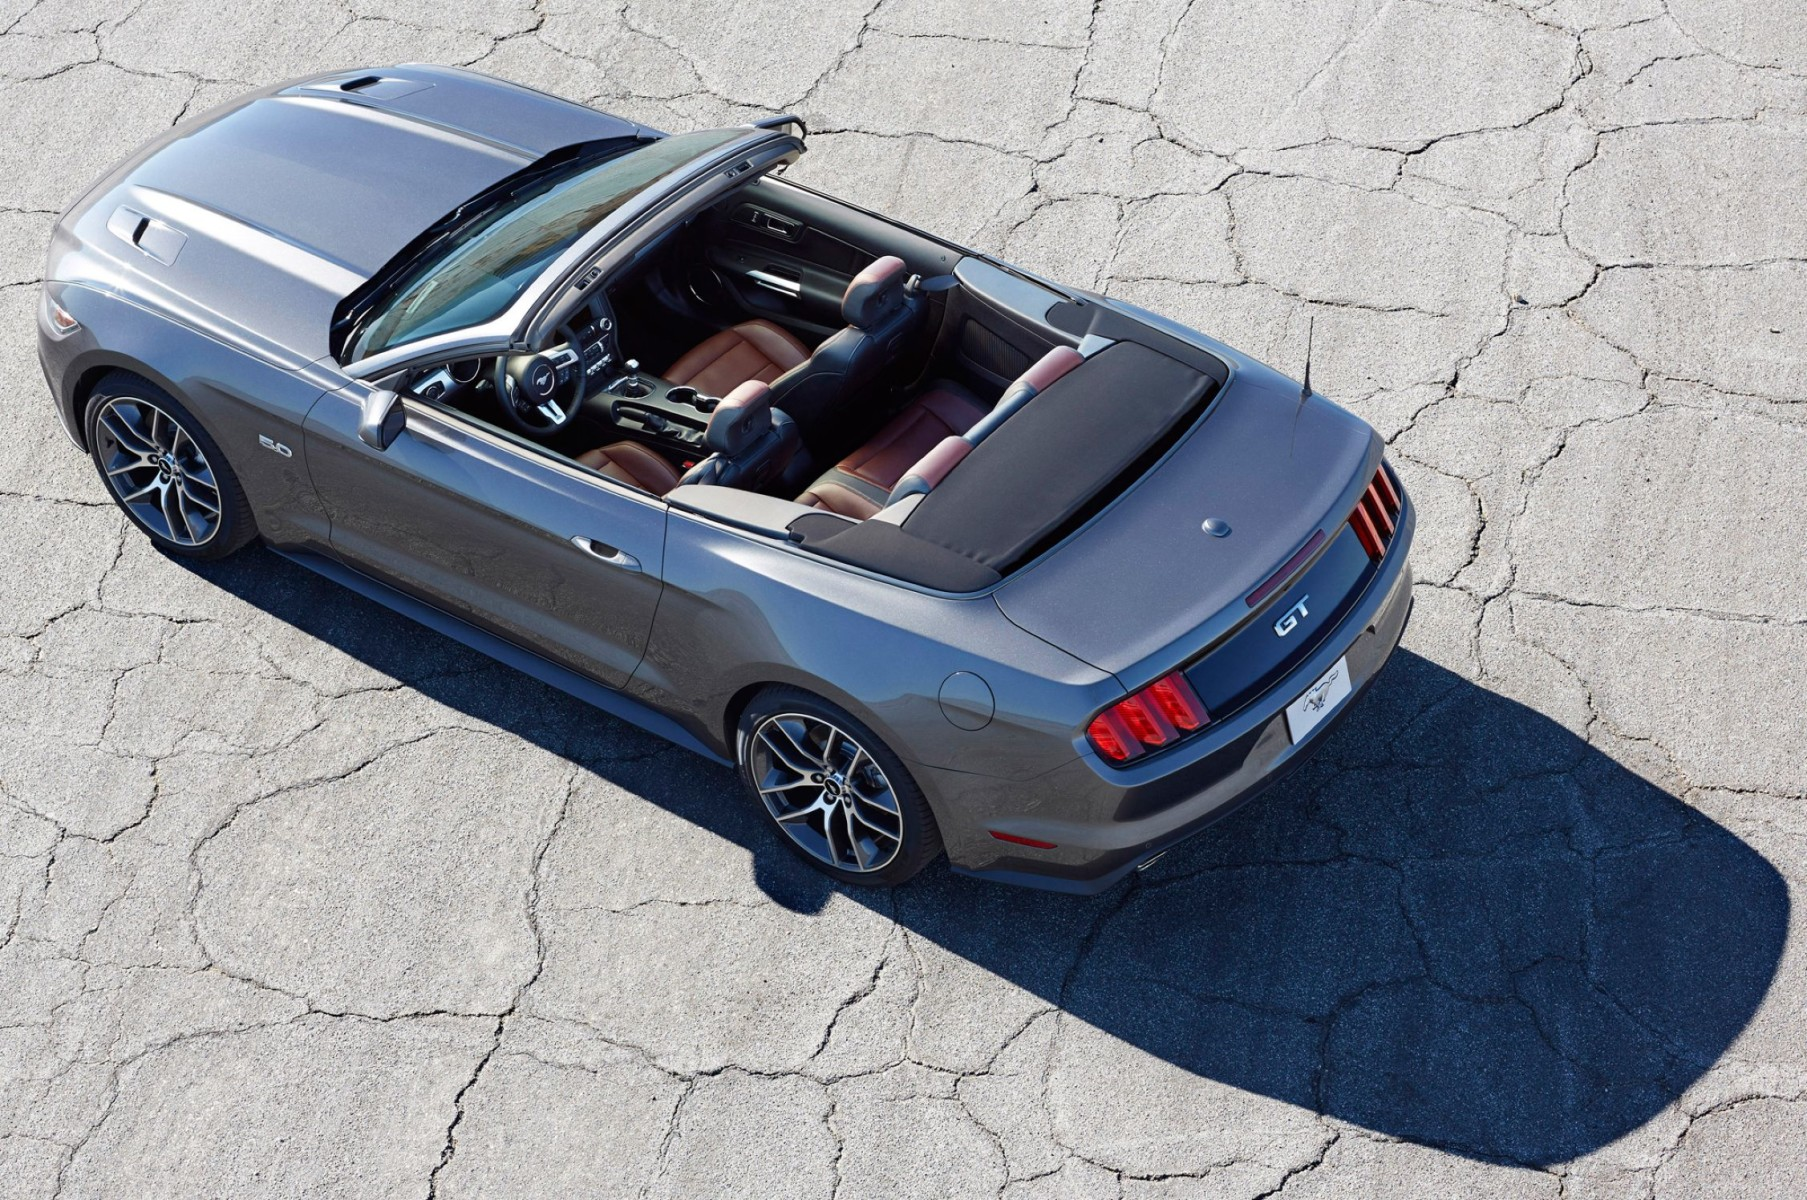 Ford Mustang GT 2015 Convertible Above View